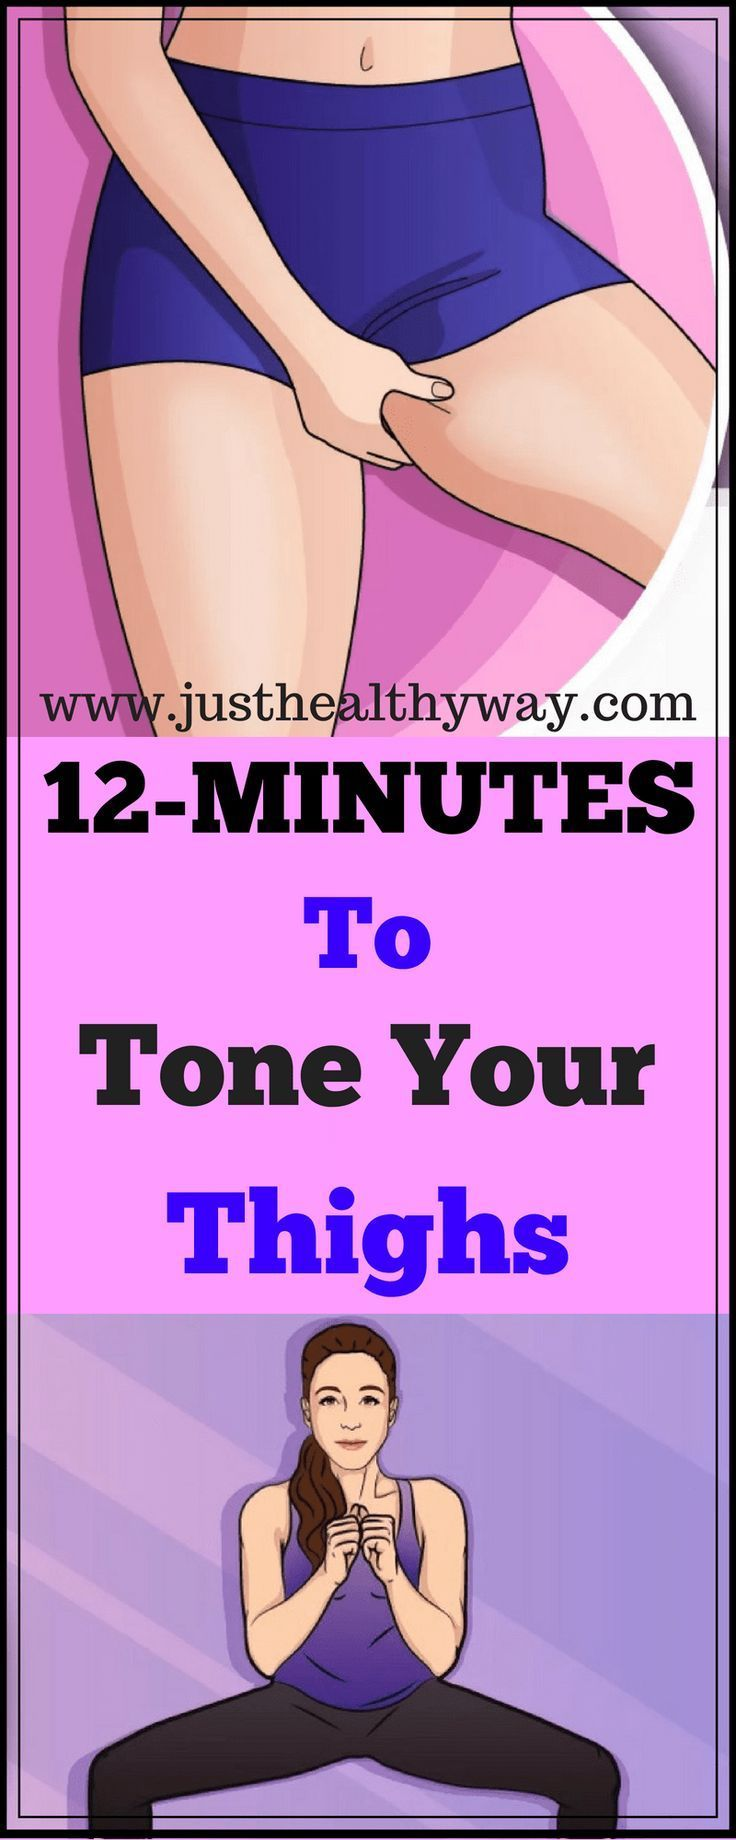 Here Are 12 Minute Workout To Tone Thighs & Burn Fat At Home #fitness #fitnessworkouts